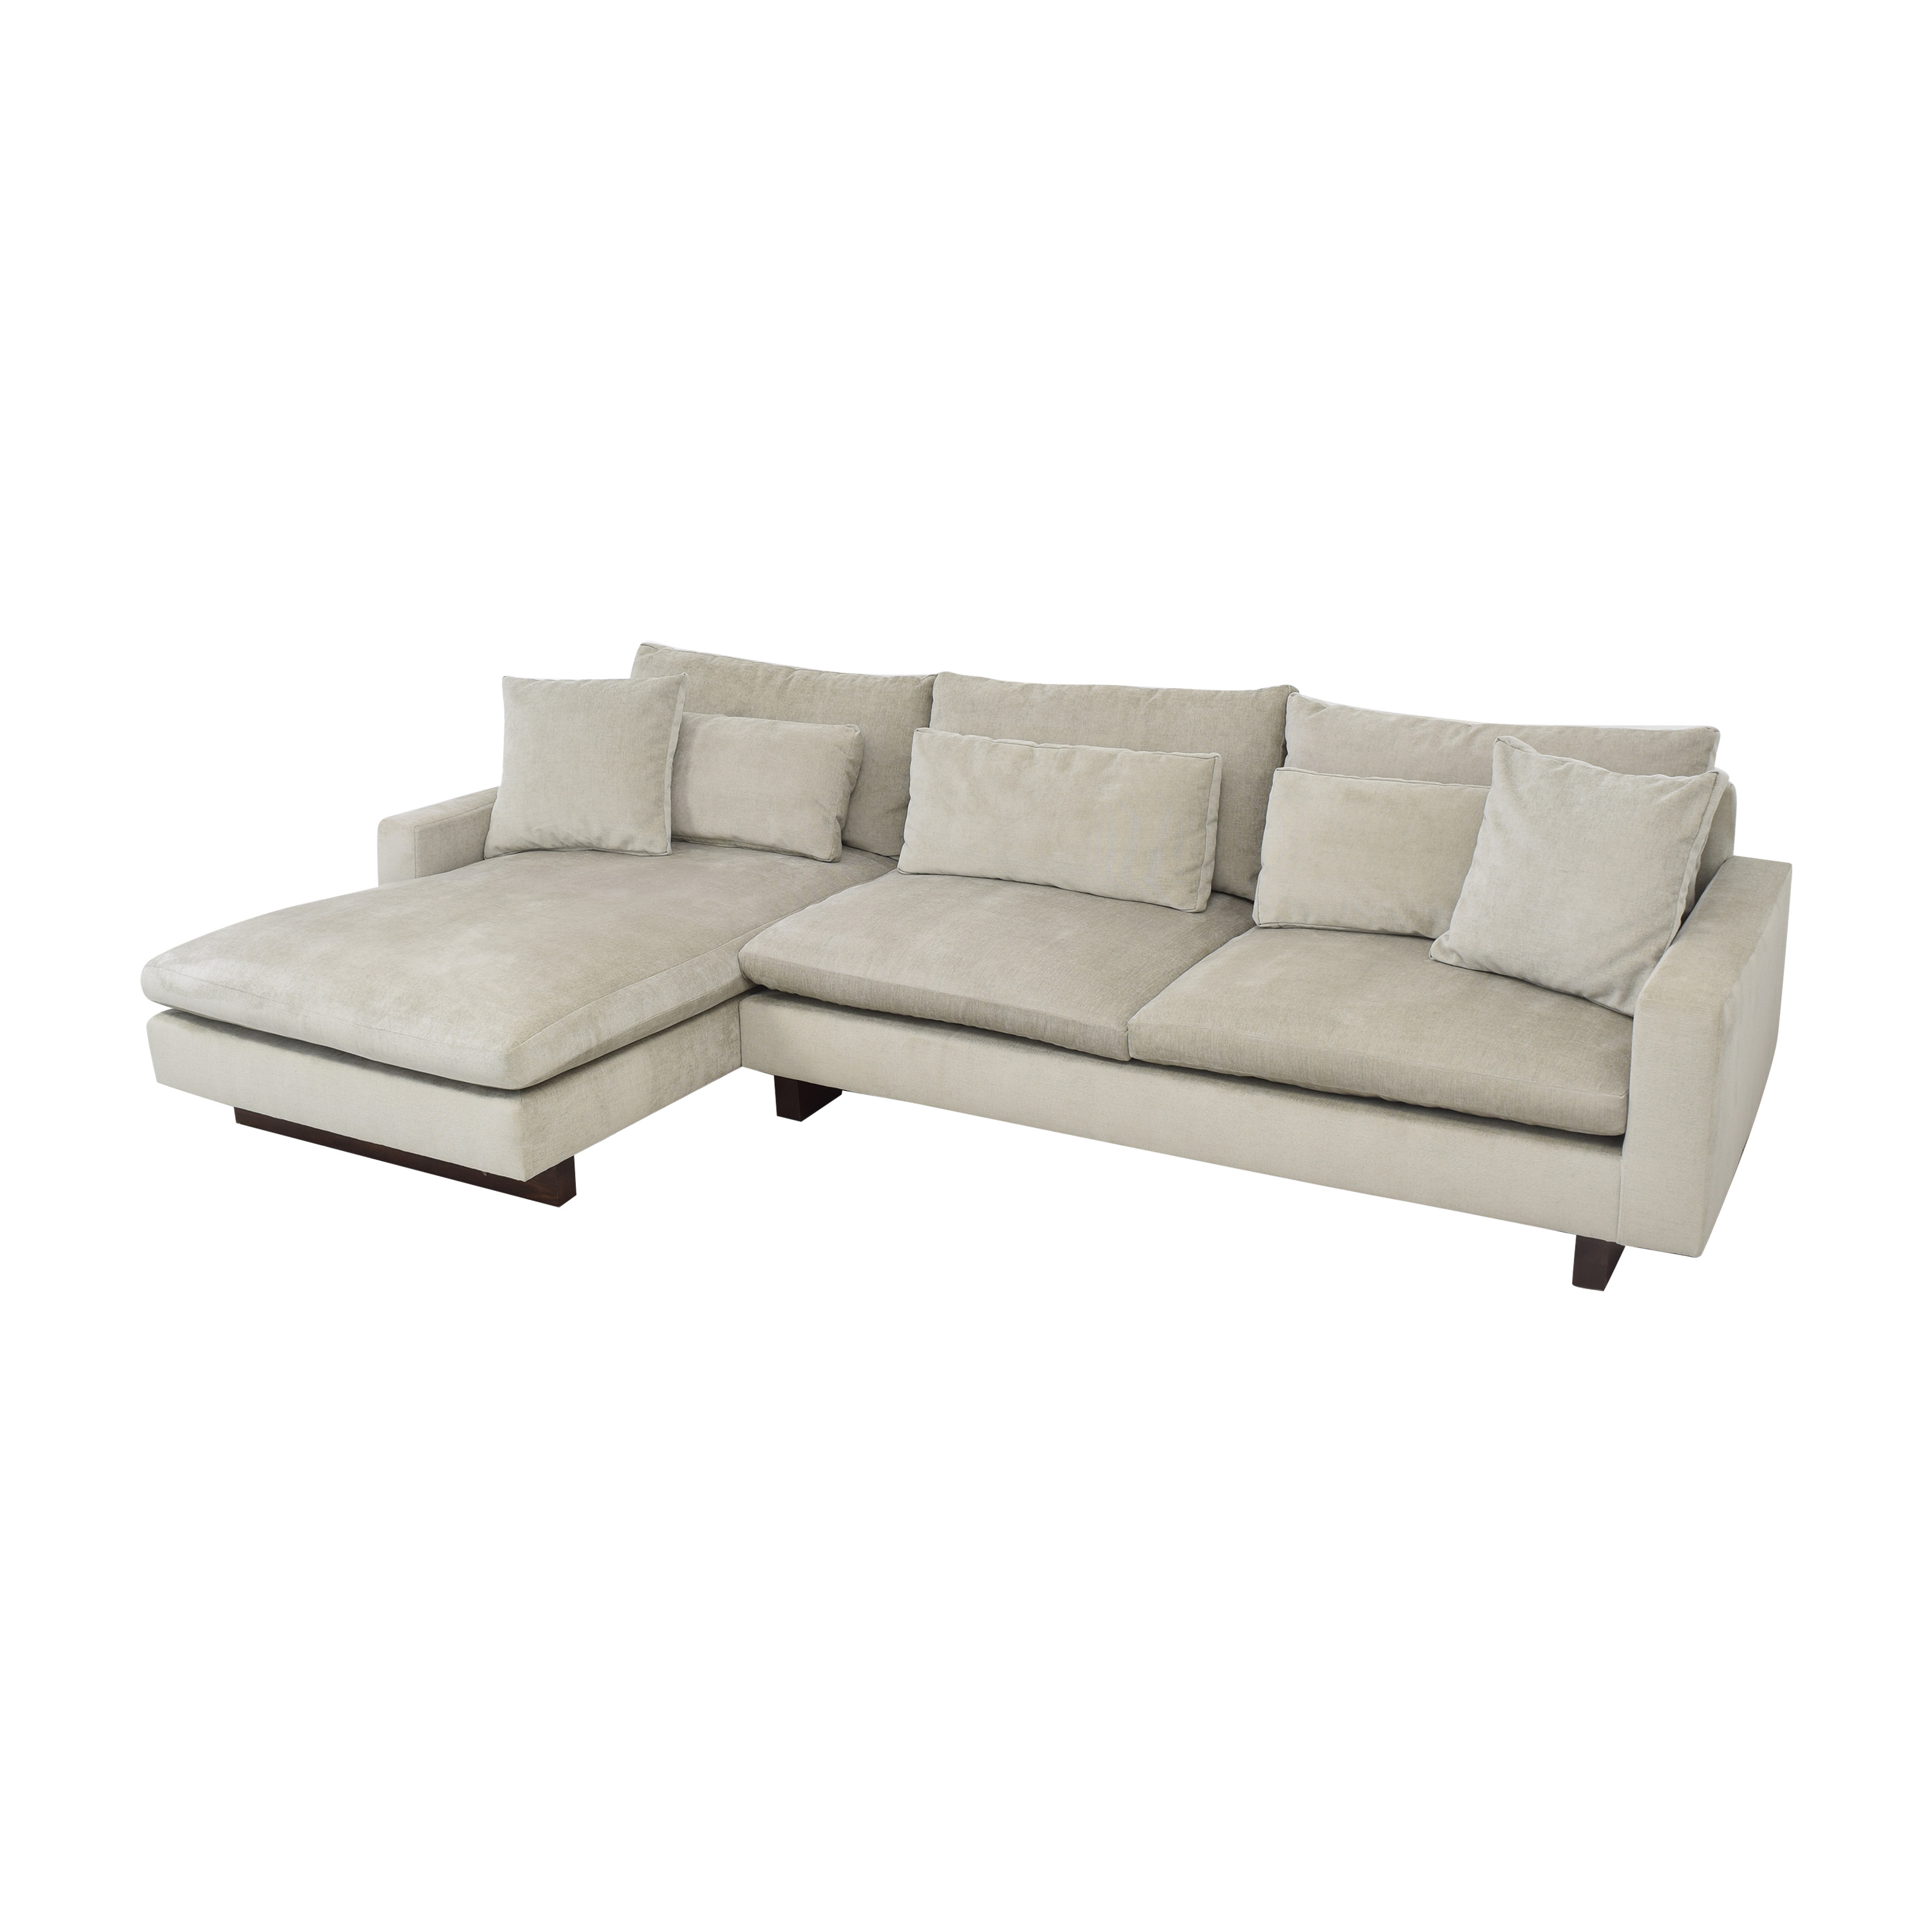 West Elm West Elm Harmony Chaise Sectional Sofa ct